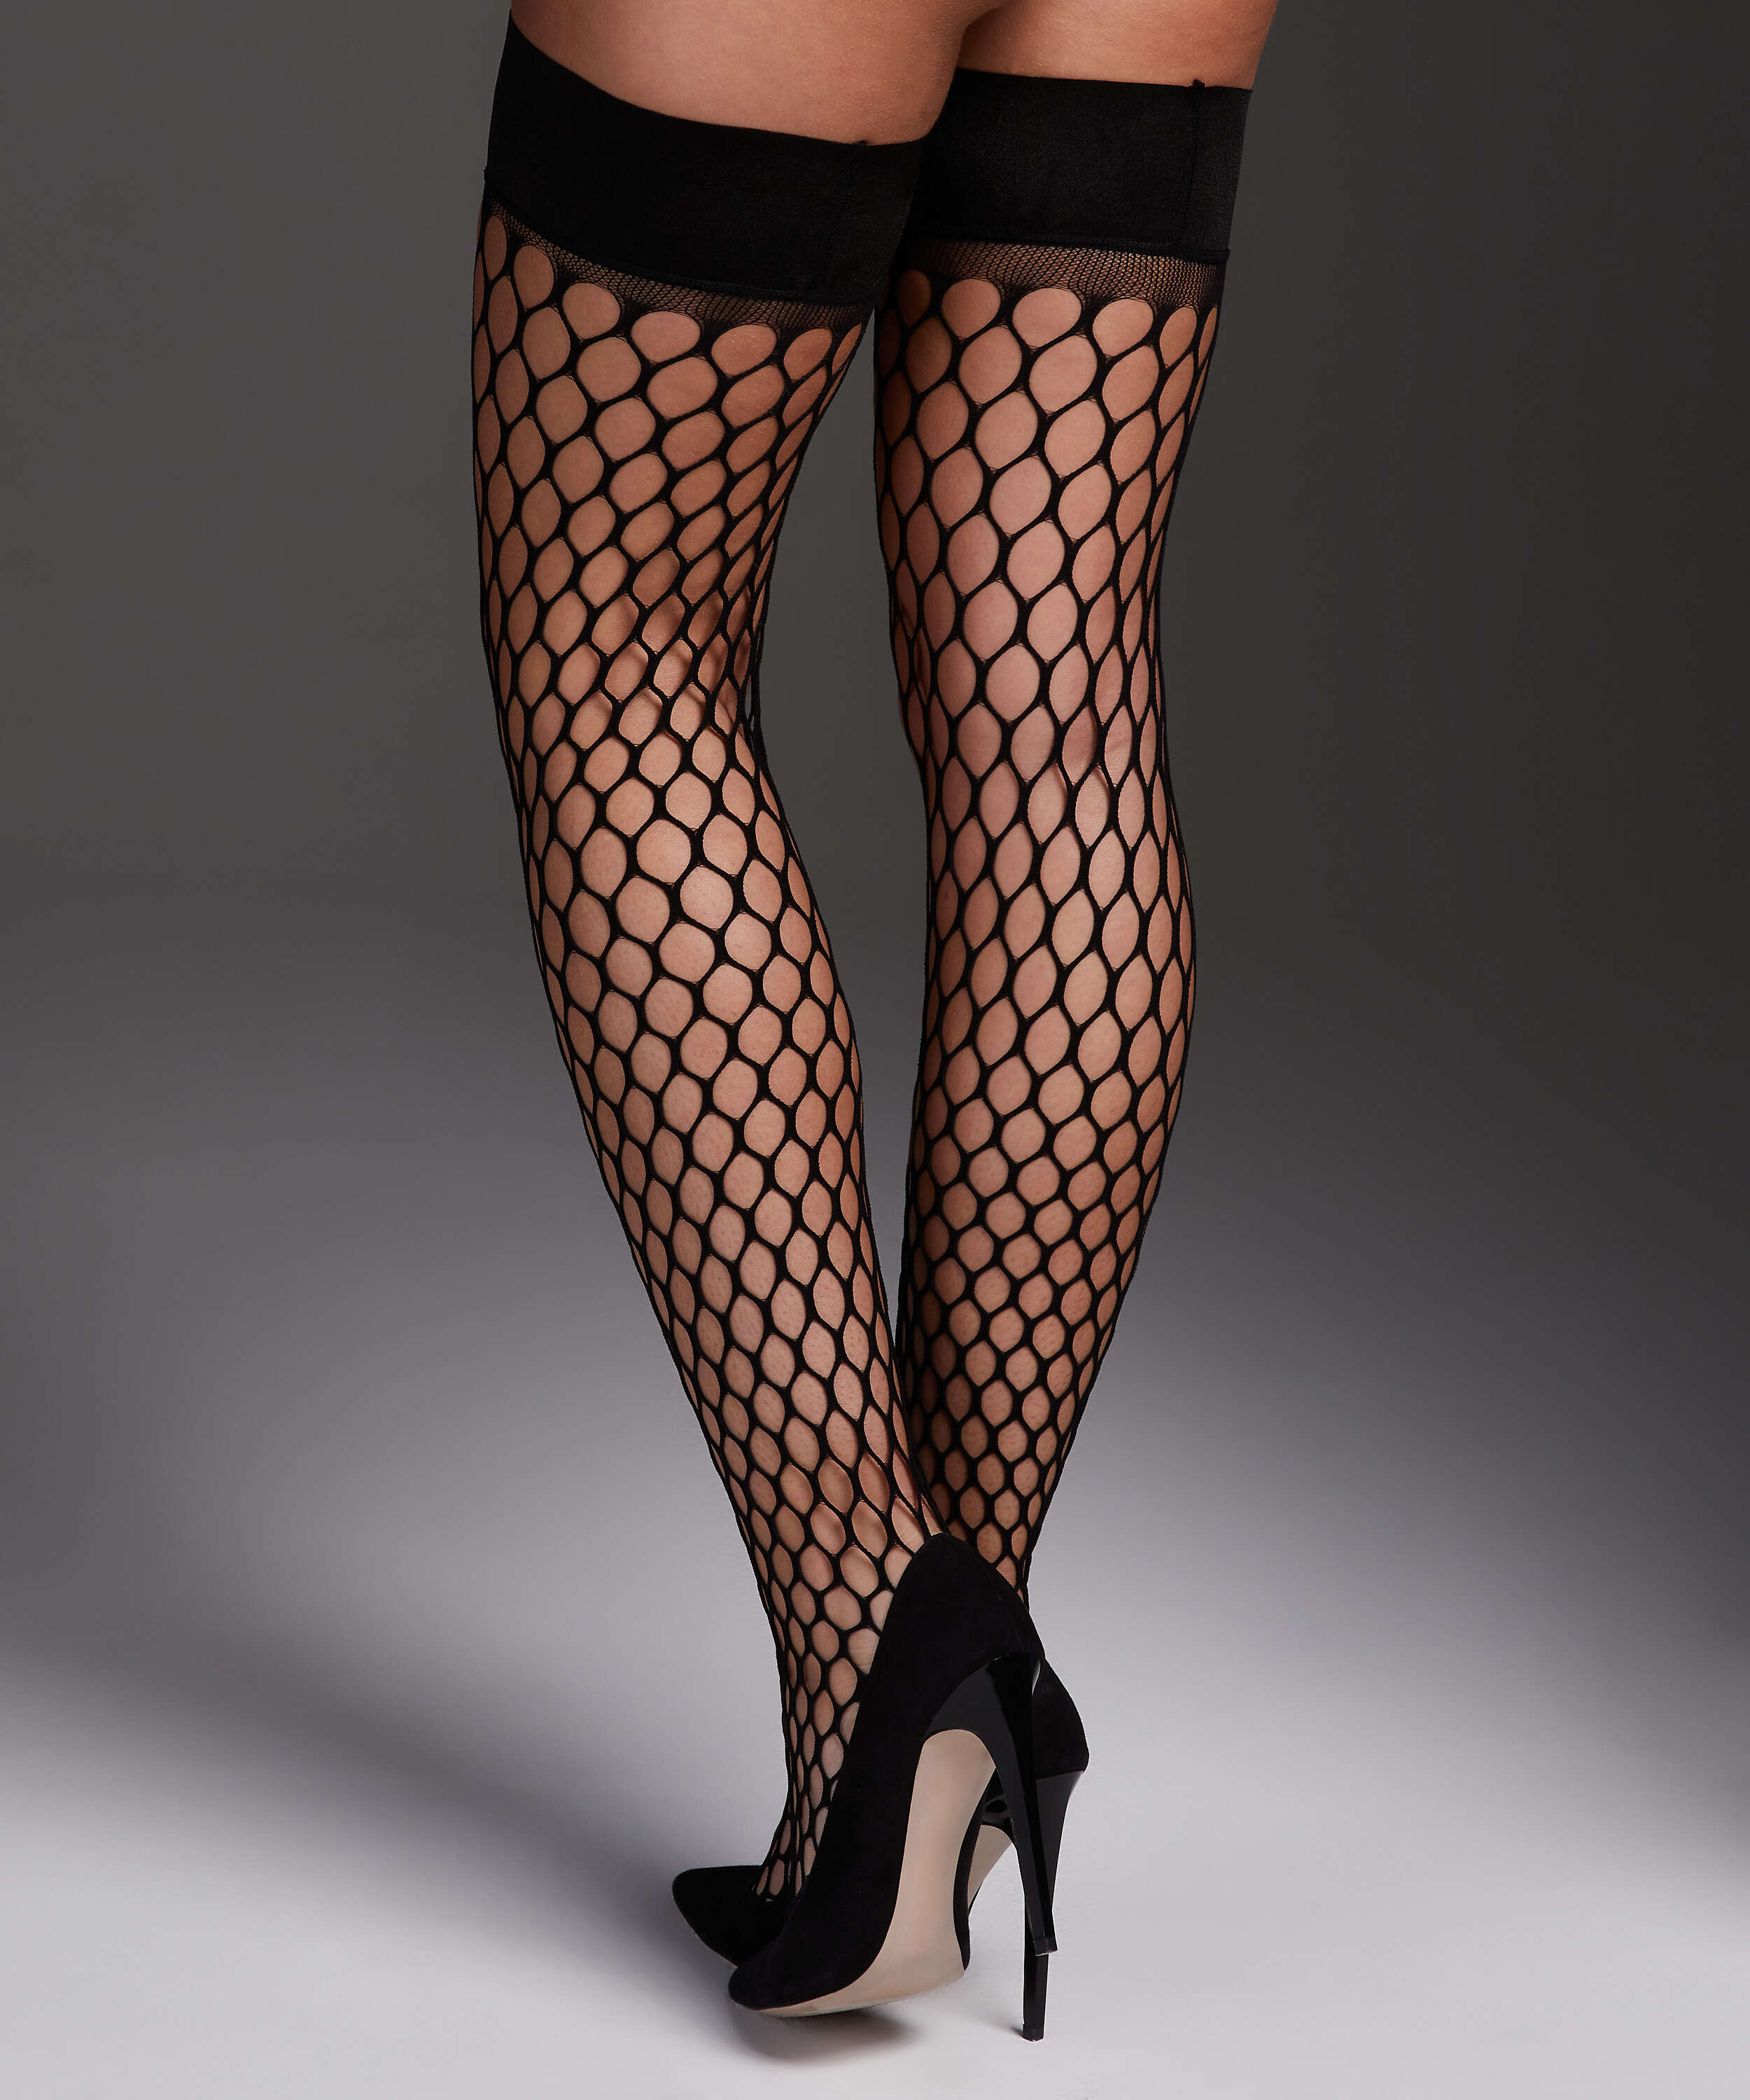 Stay-up Fishnet Private Big Sexy, Schwarz, main